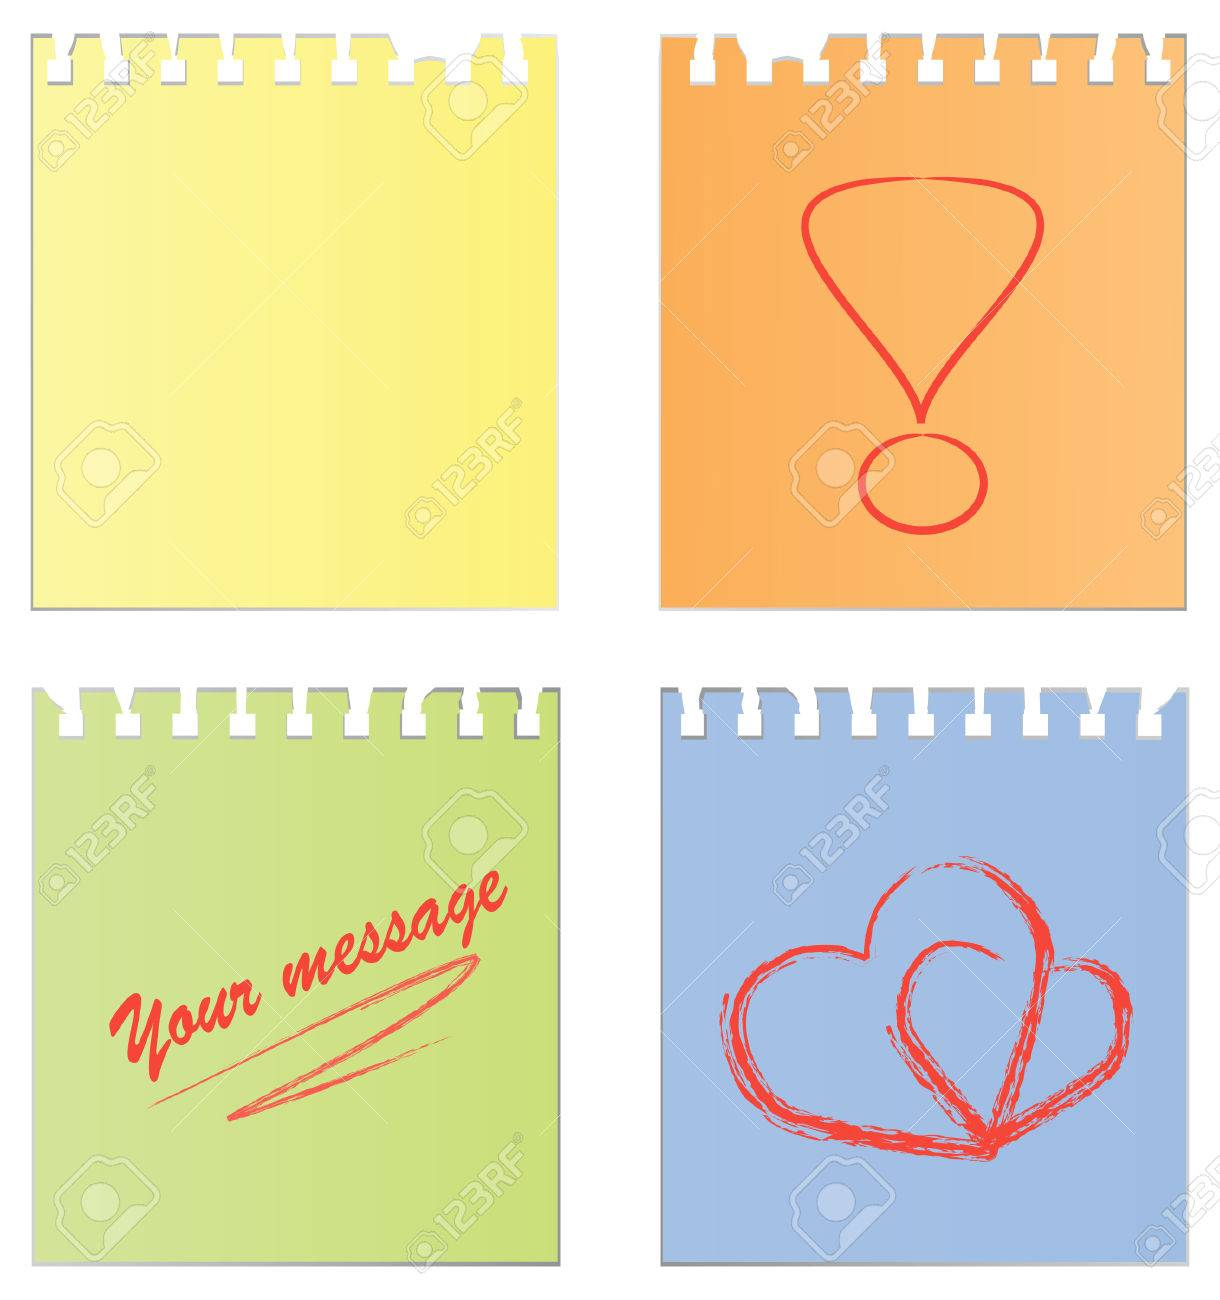 Set of an empty paper and a paper with notes Stock Vector - 8553271